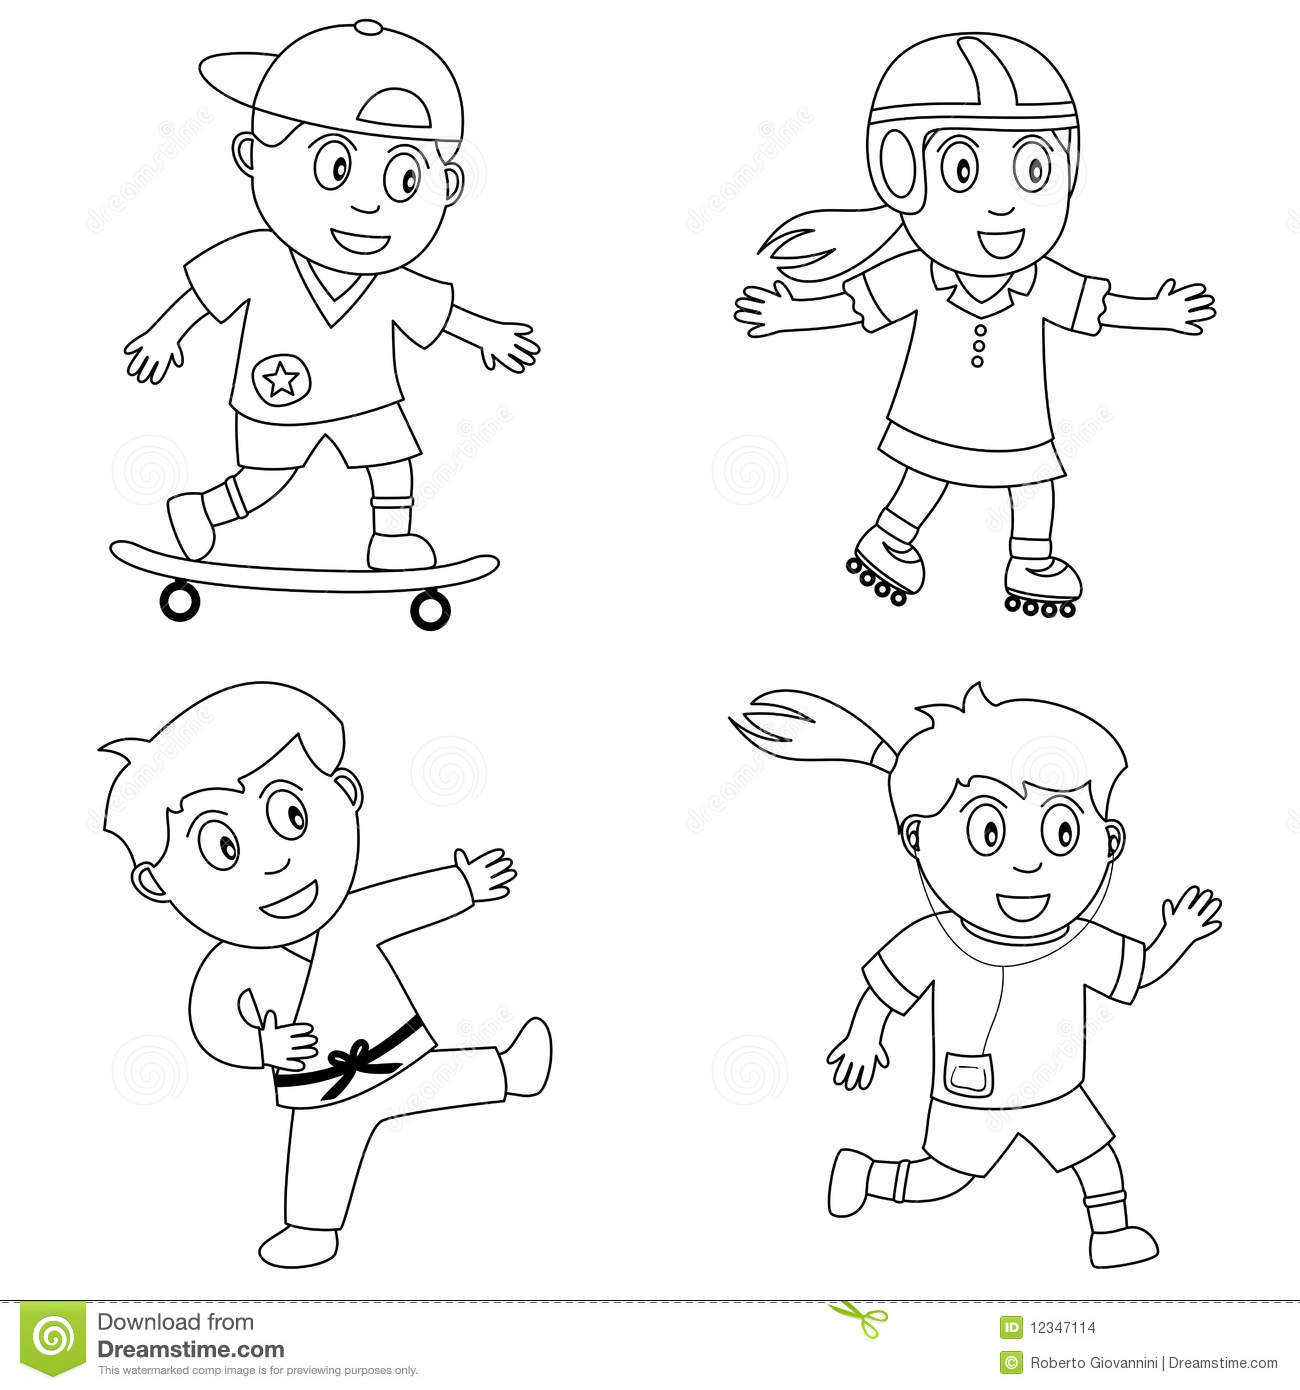 kids playing sports clipart black and white - Clipground